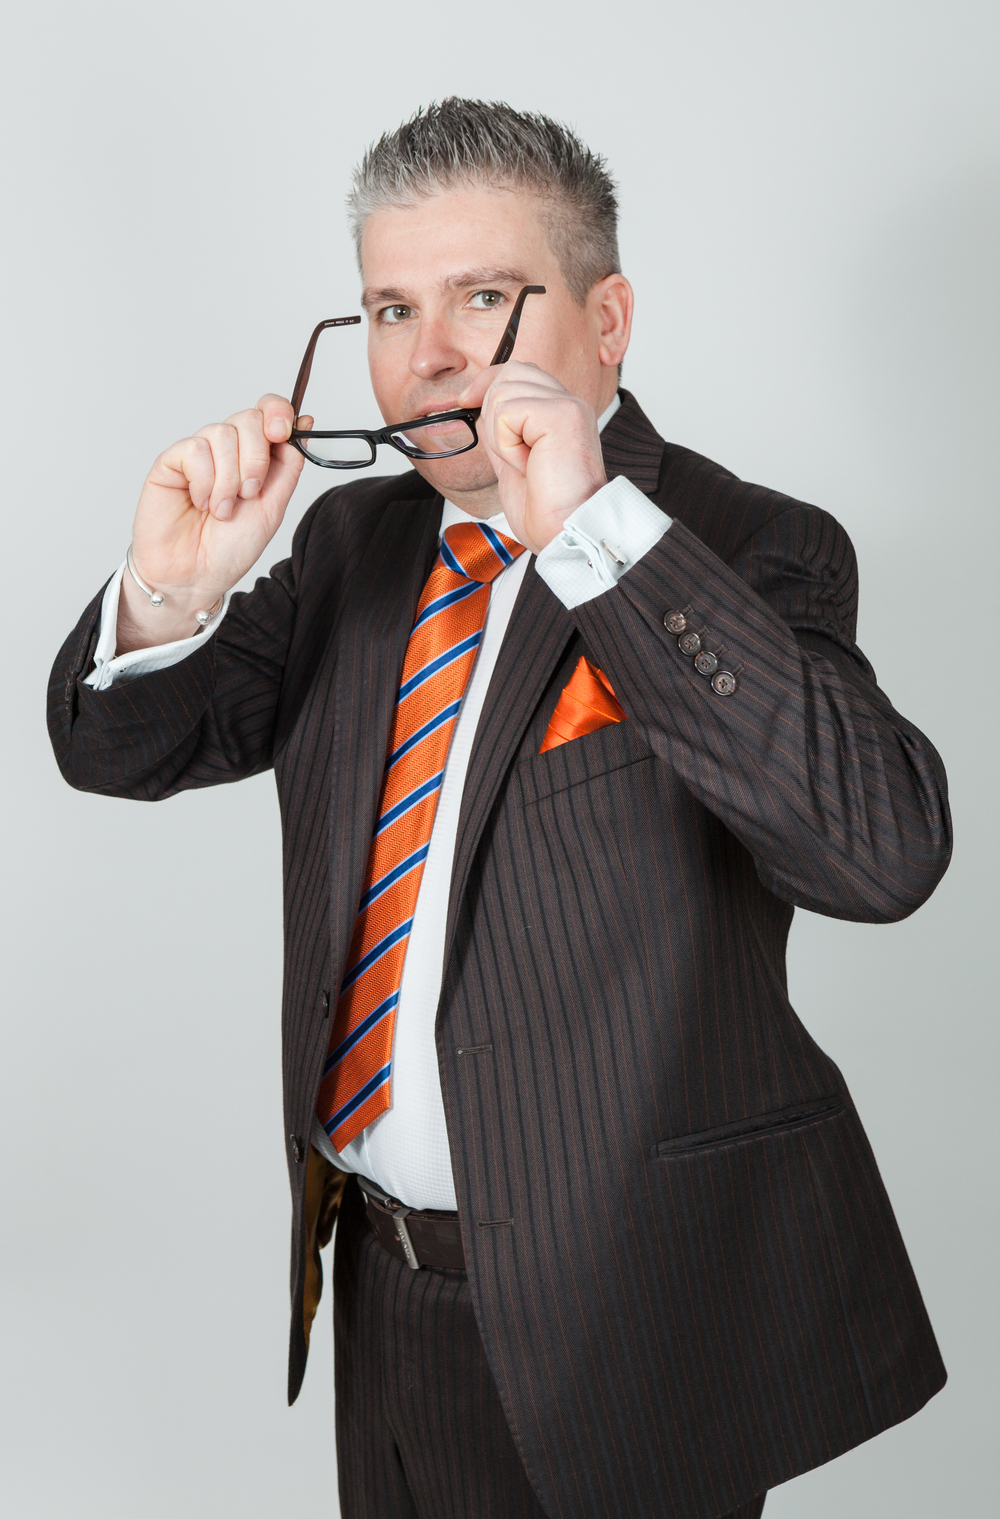 Dave Brown Suit- Glasses completley off_SimbocLtd_6953.jpg